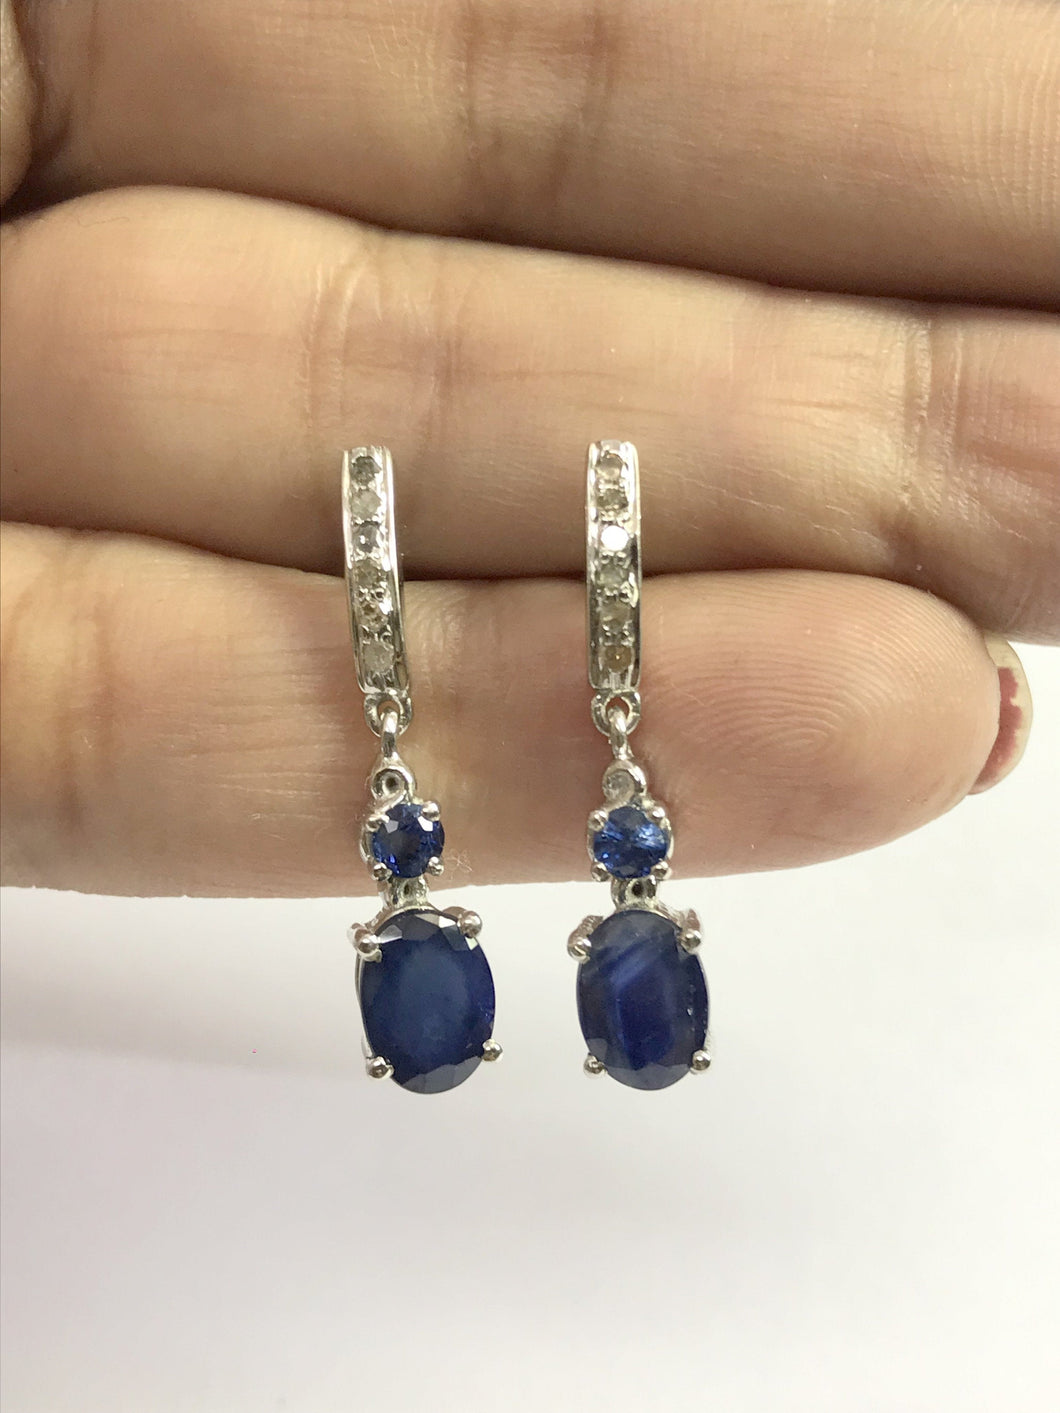 BLUE SAPPHIRE DROP Earrings, 925 Sterling silver,Dangle Earrings ,September Birthstone , Beautiful Gift for your loved ones, Wedding Gift ..